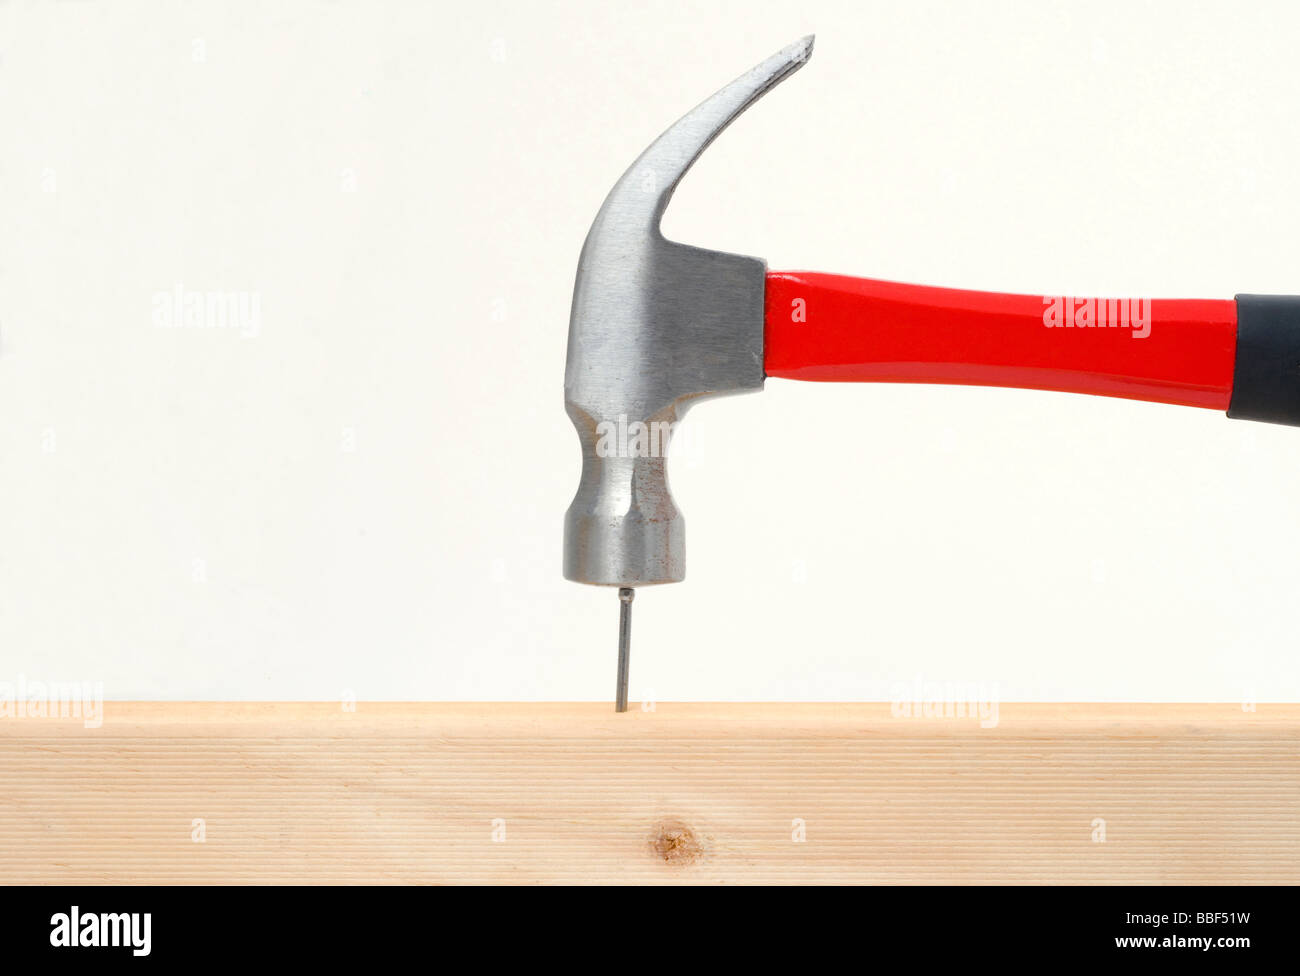 Hammer hitting a nail on the head into woood Stock Photo